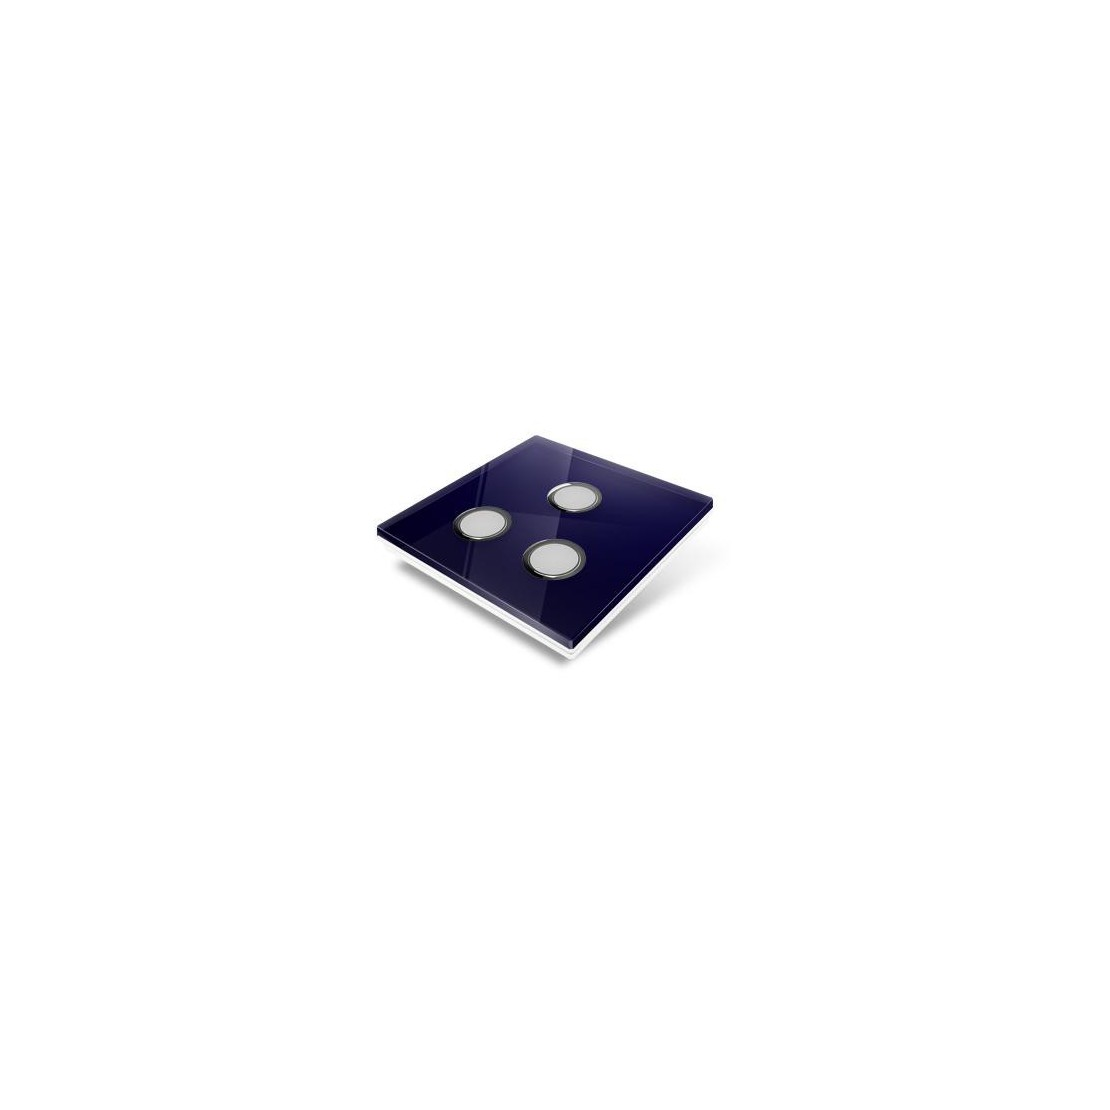 Switchplate for Edisio - midnight blue crystal